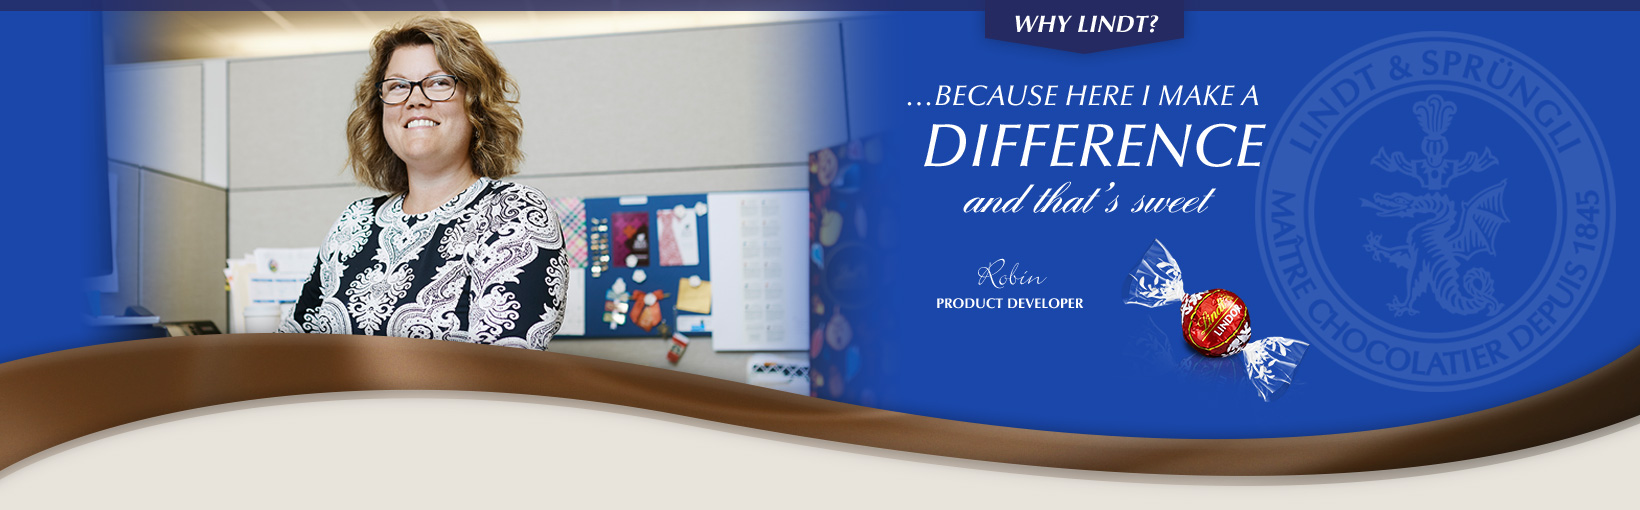 Why Lindt? …Because here I make a difference and that's sweet. Robin Rickmeier, Product Developer